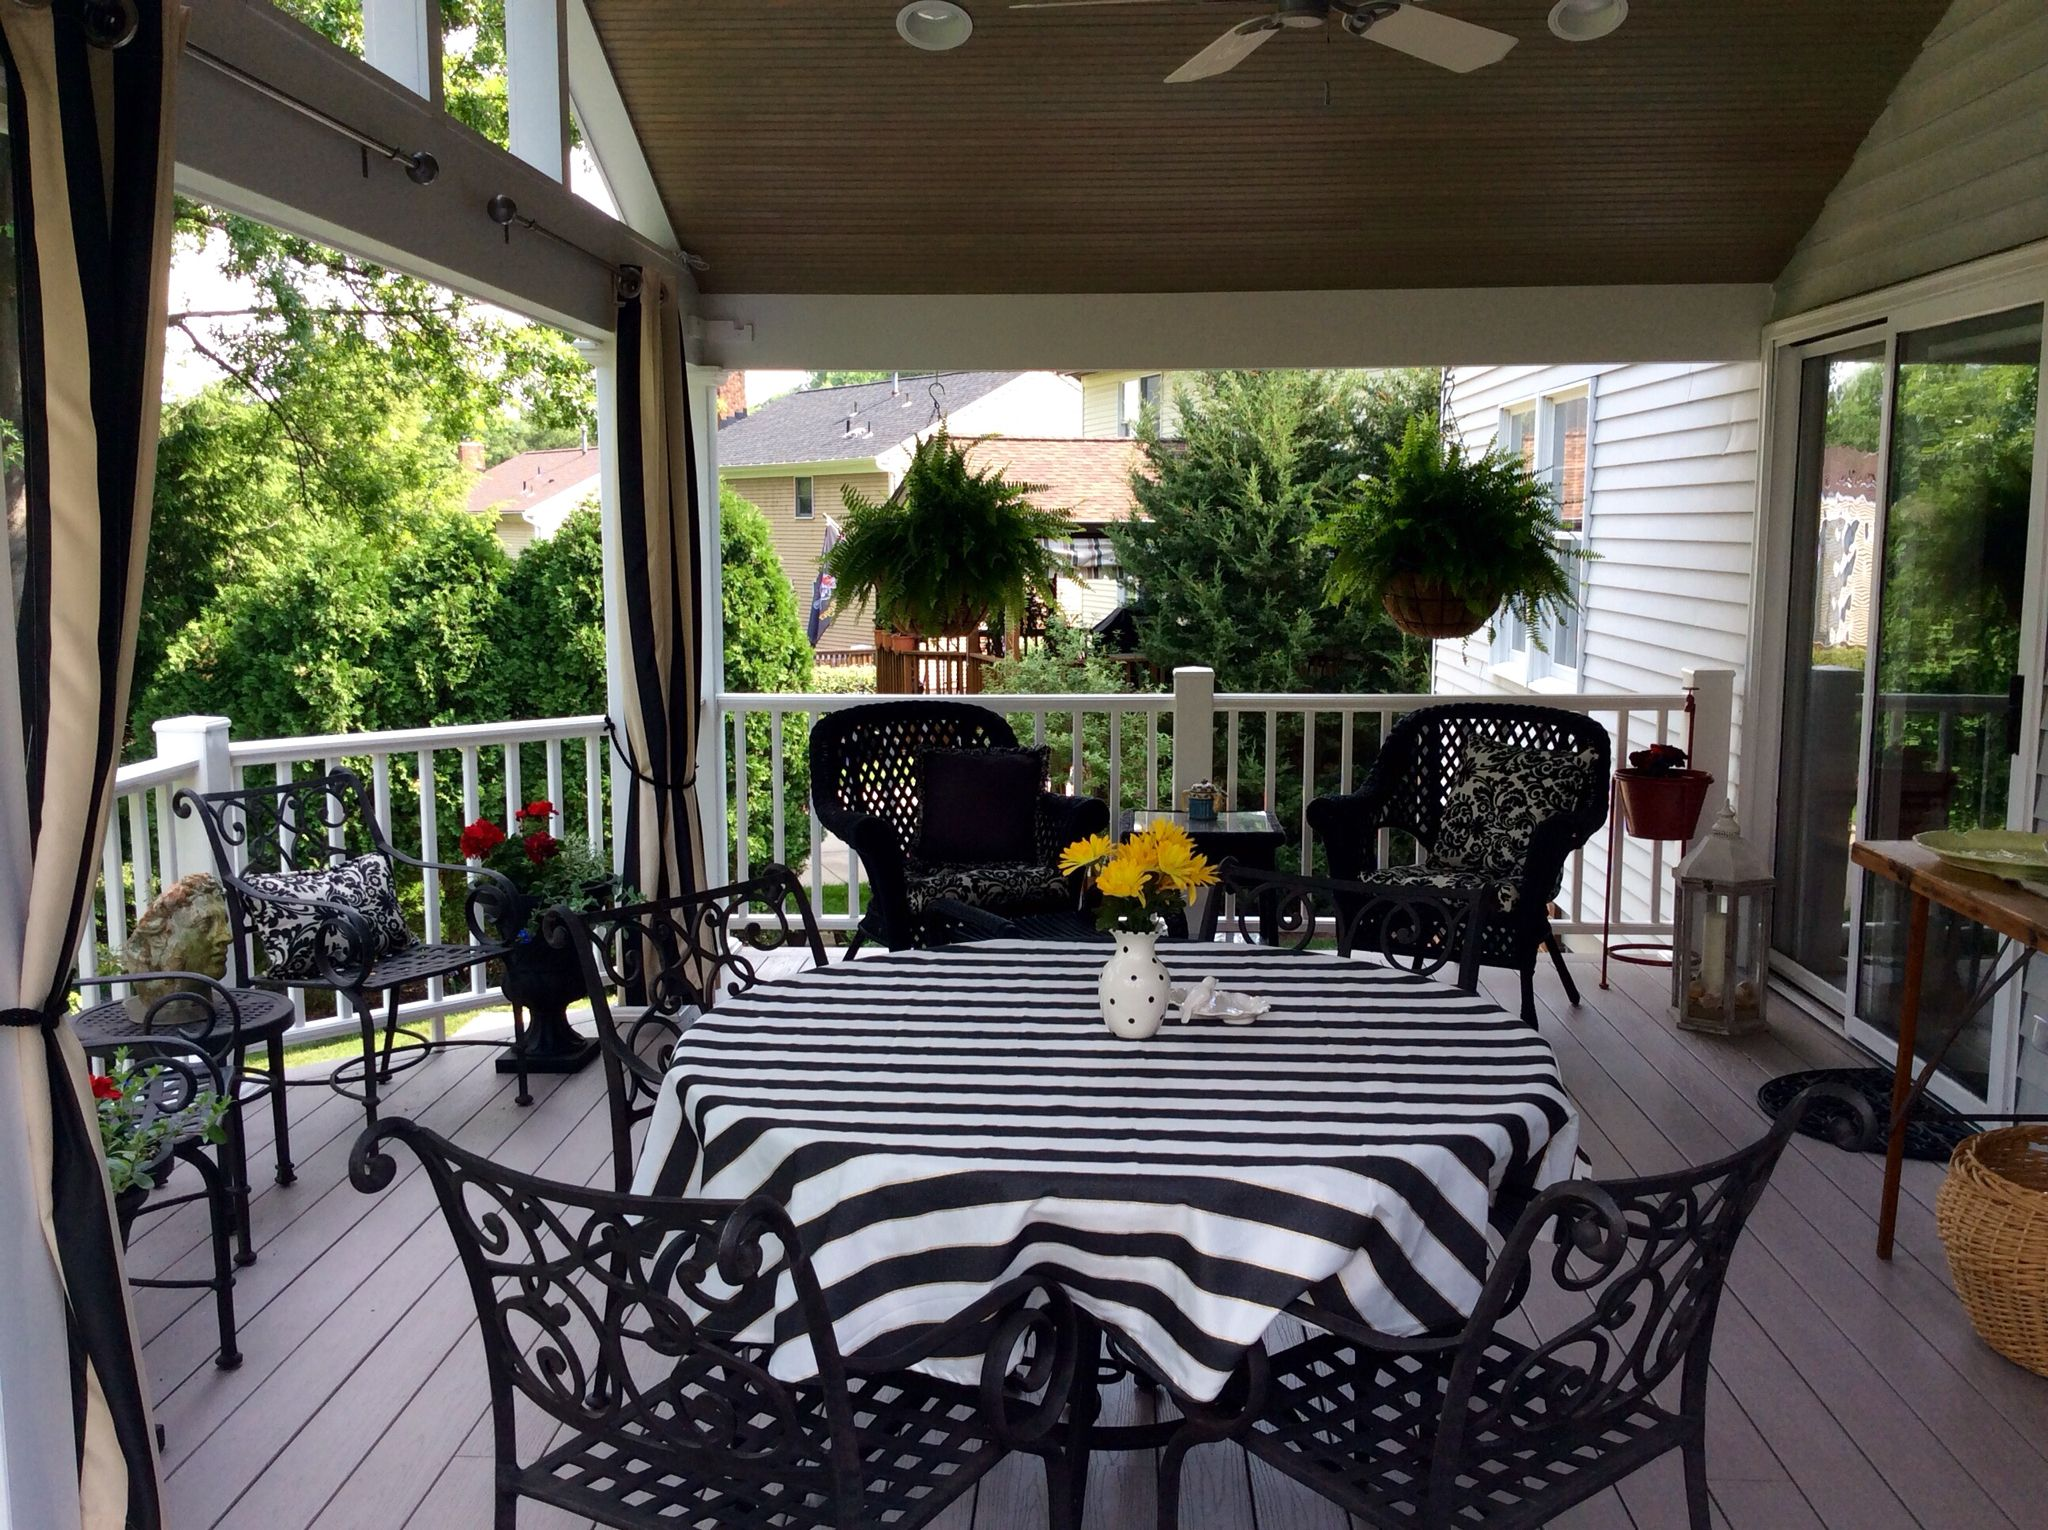 Large, open covered porch